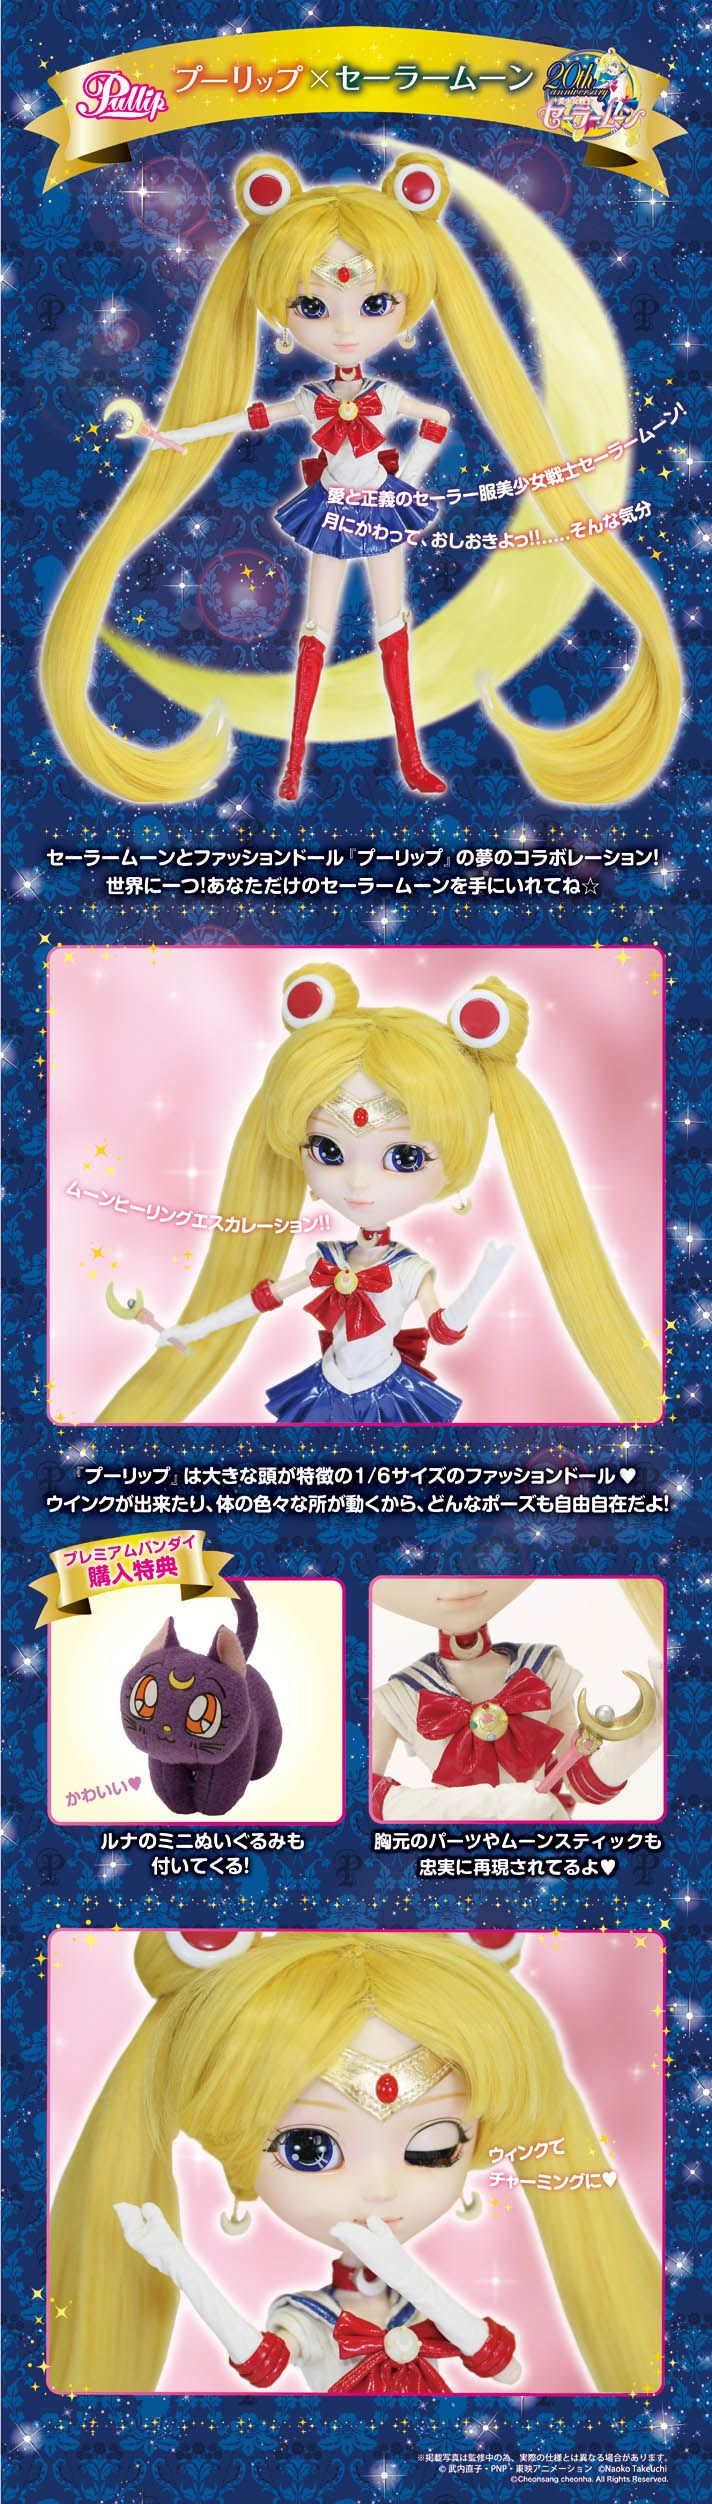 Sailor Moon Pullip Doll with mini Luna plush cat at Bandai Premium.  Animejems is in love!